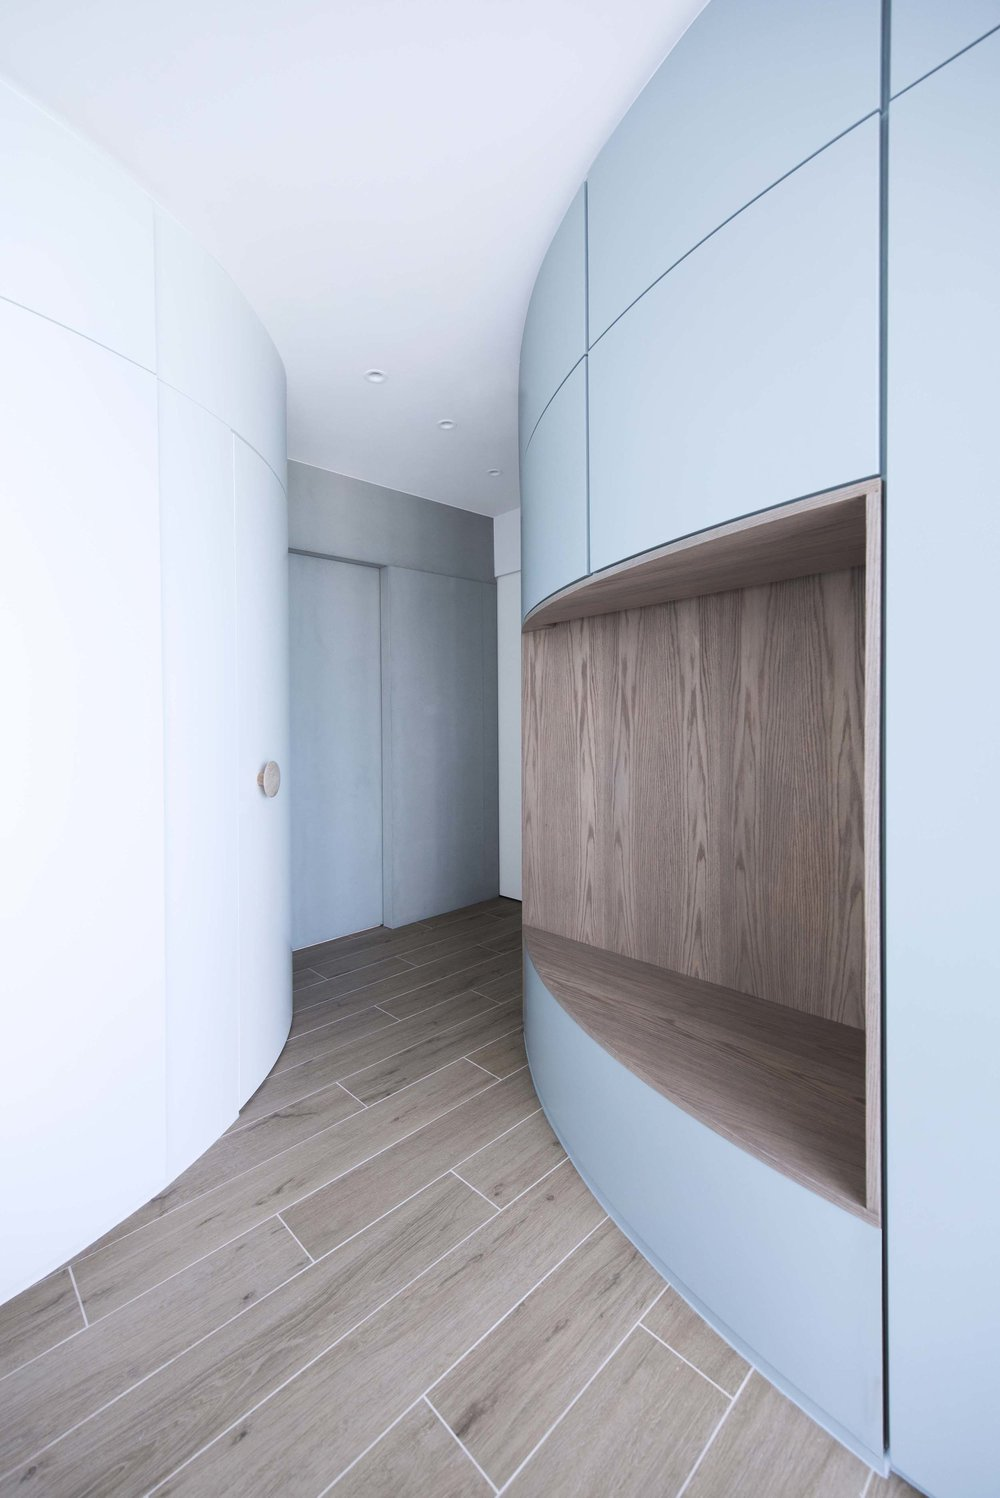 An innovative solution is created to address the relationship between the parents spaces which are the master bedroom suite and the study room, the children spaces, and the common social spaces. In order to create privacy for the parents, a concealed pocket sliding door can be pulled out from the concrete volume to divide the master bedroom suite and study room away from the rest of the apartment. The sliding door has acoustic separation to ensure the noise from the children play spaces will not penetrate to the study room where the parent has to carry out focused works. To further increase privacy for the study room, an additional sliding door is designed to partition the study room from the master bedroom suite, this will allow flexibility for one parent to be sleeping in the master bedroom while another might be working in the study. When both sliding doors are opened, the two elements of the flowing blue volume and the concrete volume would appear to flow continuously throughout the entire apartment, fluidly connecting the parents spaces back to the open spaces of the apartment.